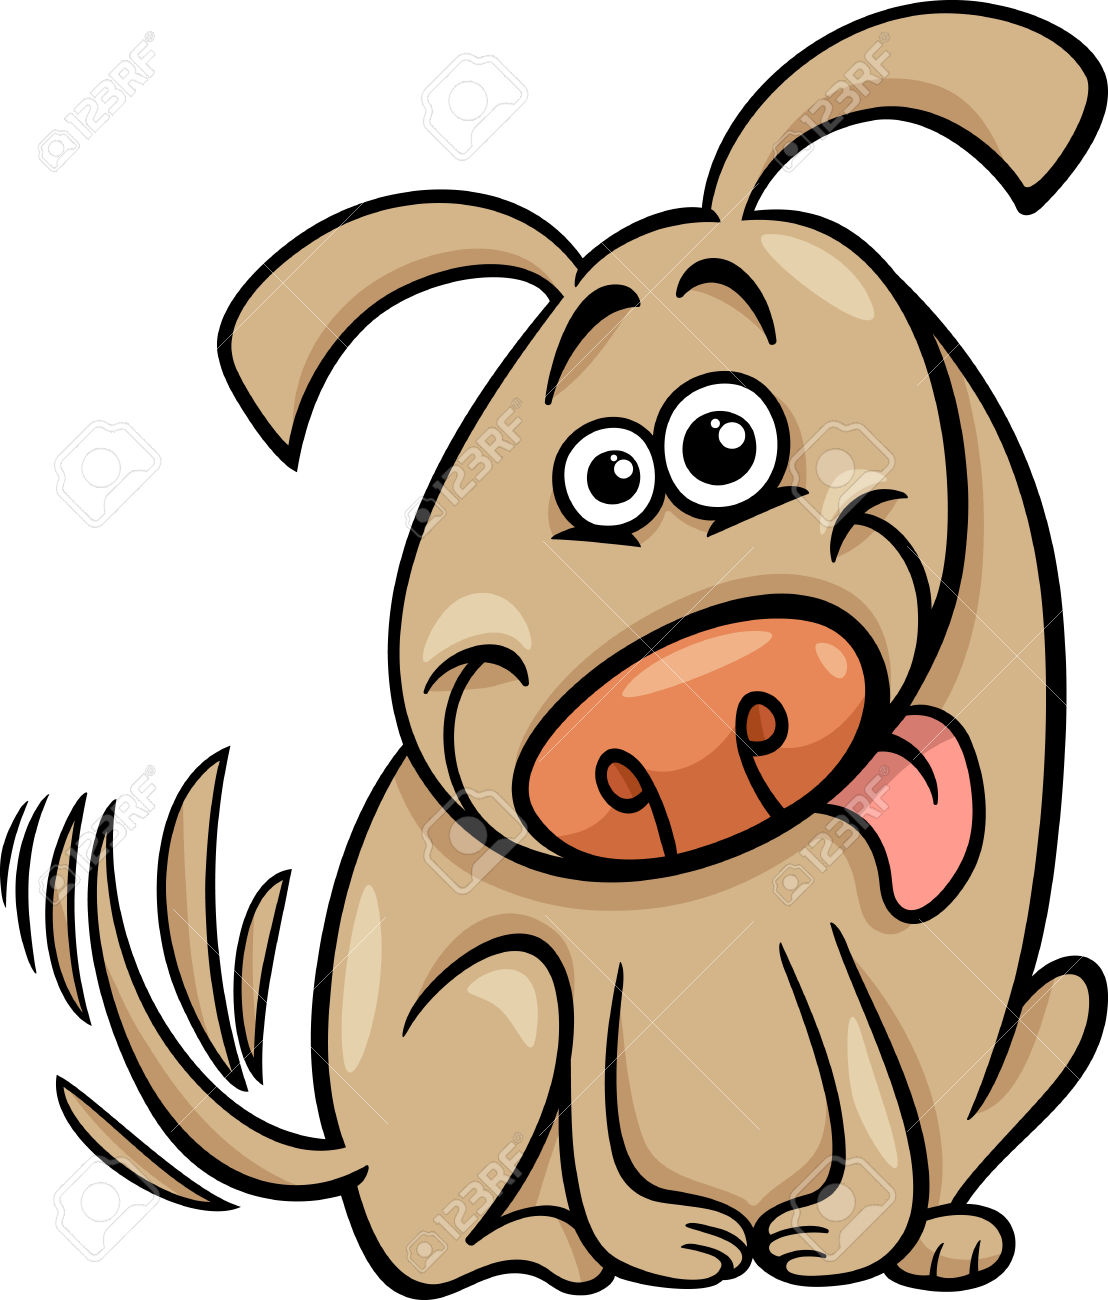 Perro clipart dog tail Illustration Cute Of tail clipart